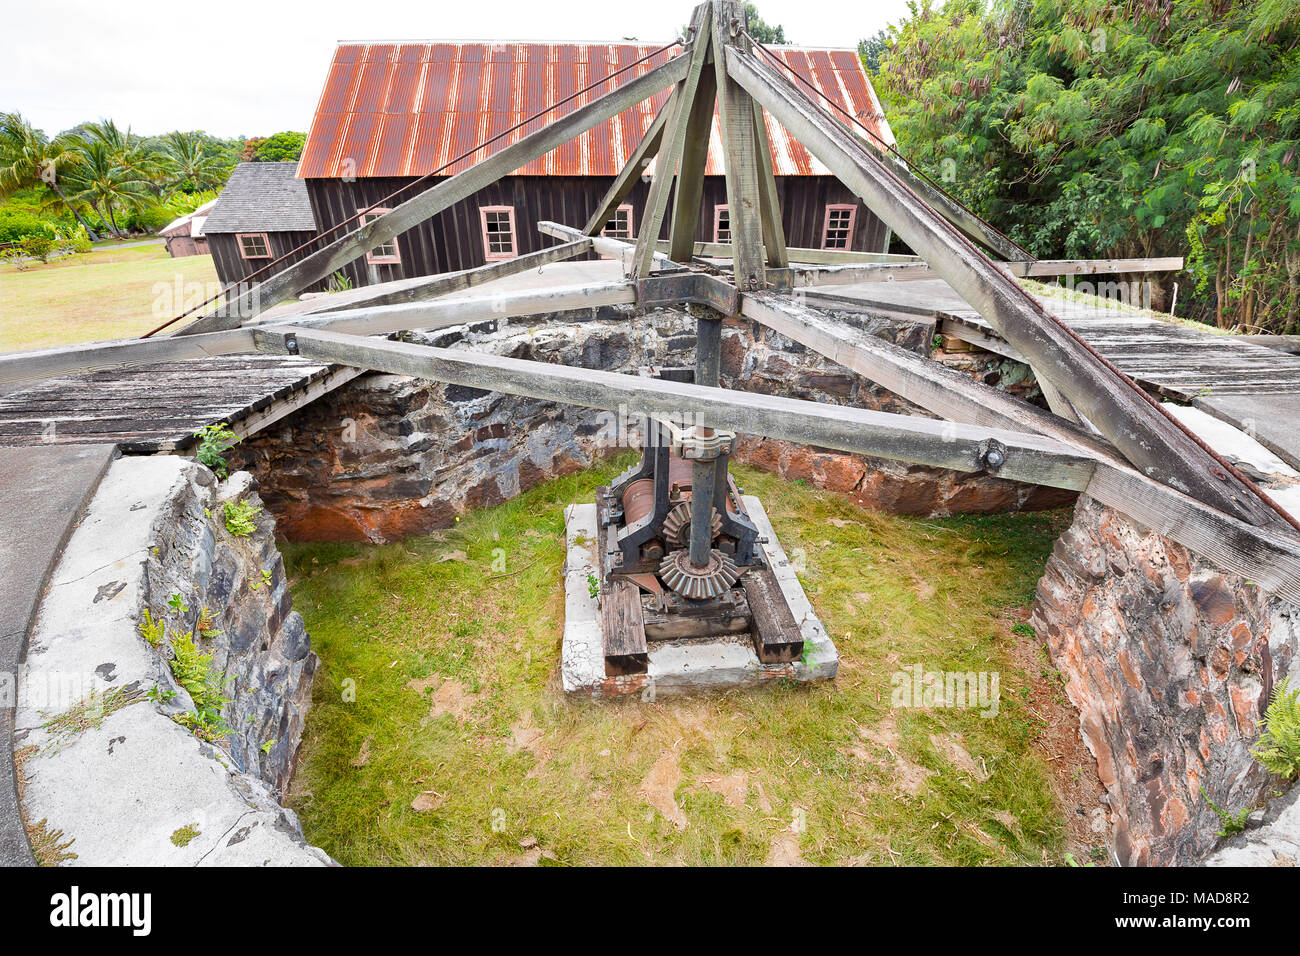 A mule-driven cane crusher at the RW Meyer Sugar Mill Museum in Kualapuu, Molokai, Hawaii. This is listed on the National Register of Historic Places  - Stock Image